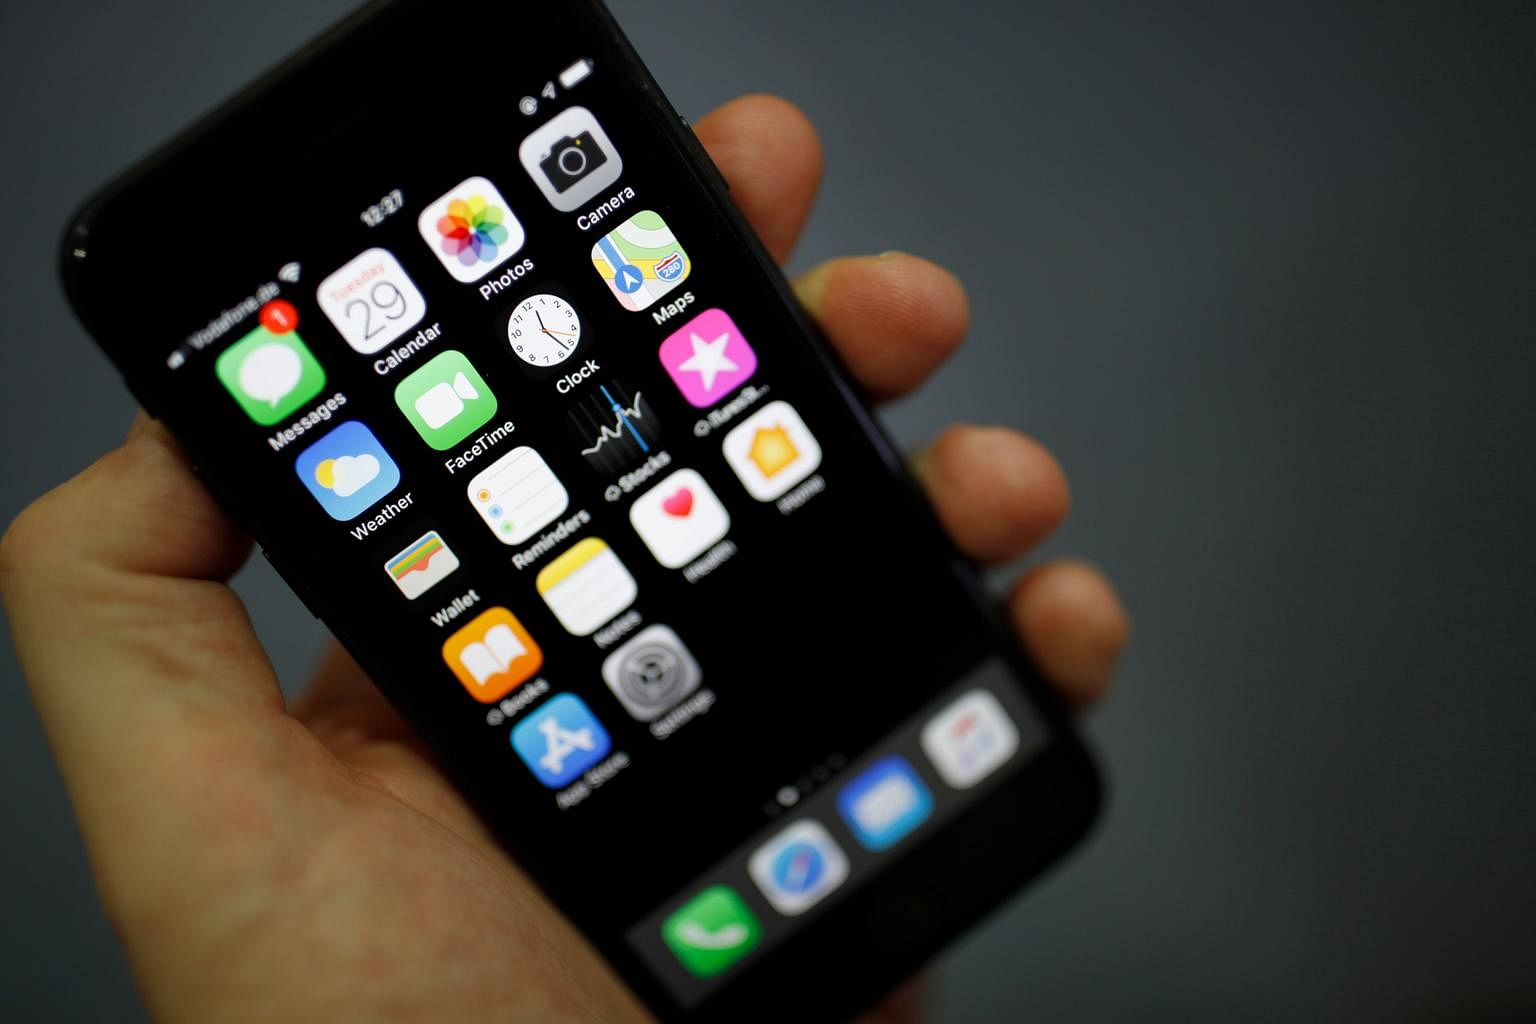 Software pirates hijack Apple tech to let iPhone users